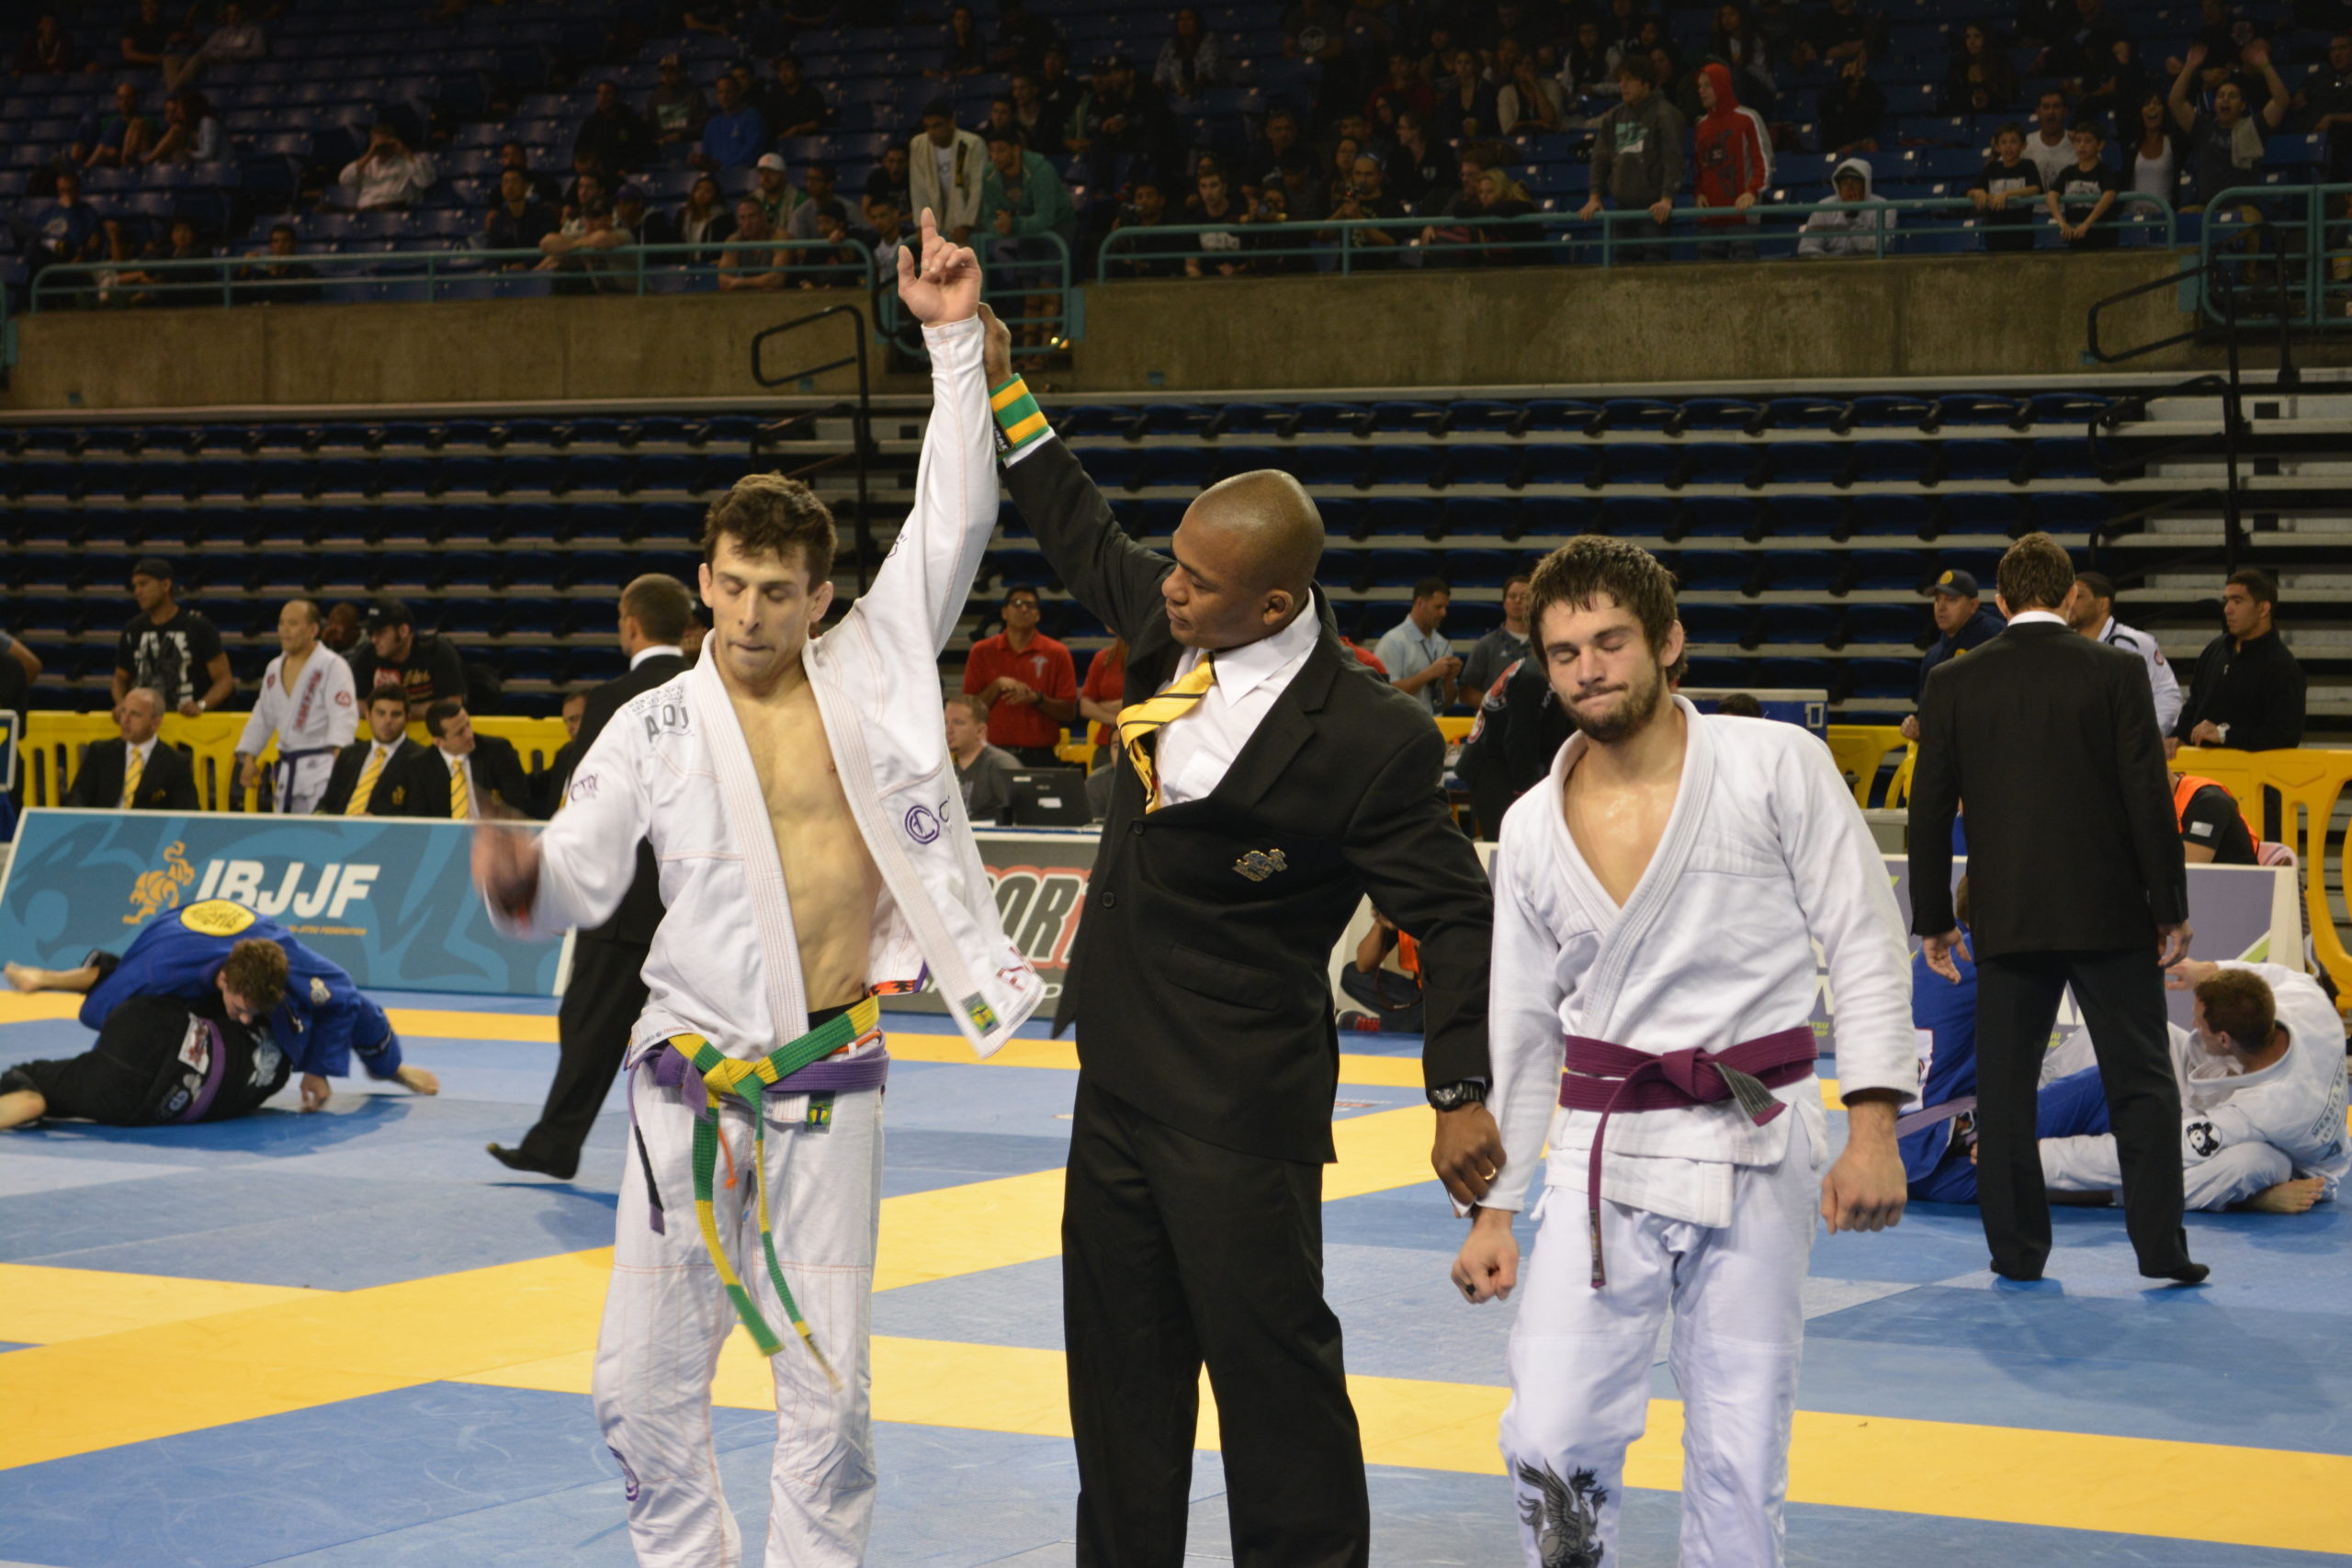 Pan Jiu Jitsu 2014 Pictures / Results